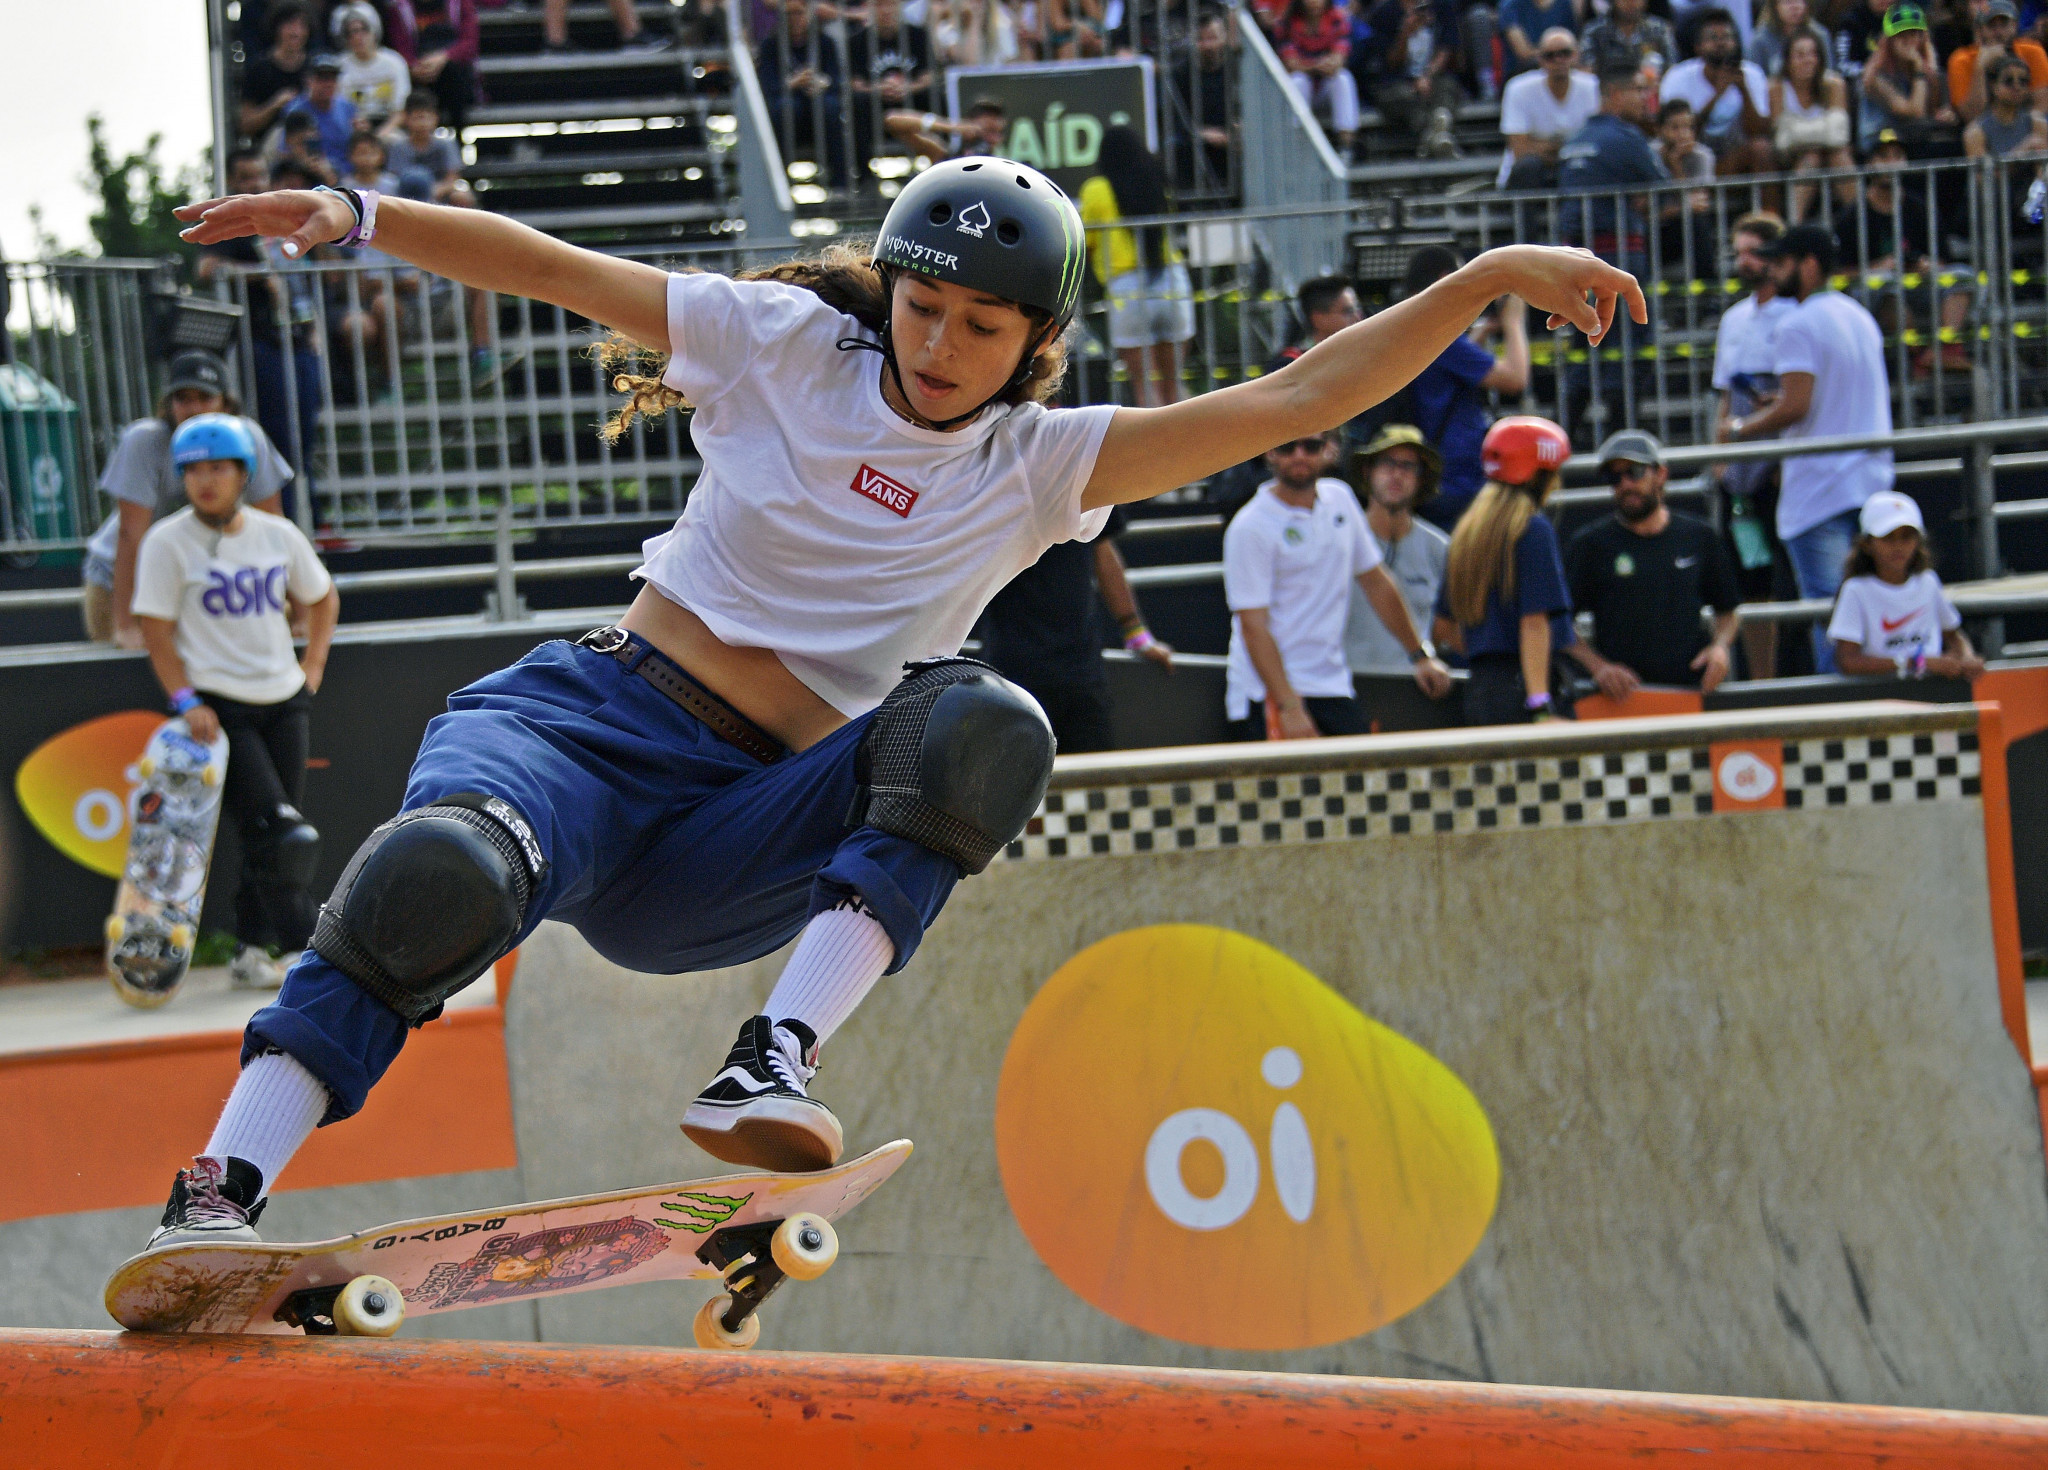 Skateboarding is due to make its Olympic debut at Tokyo 2020 next year ©Getty Images